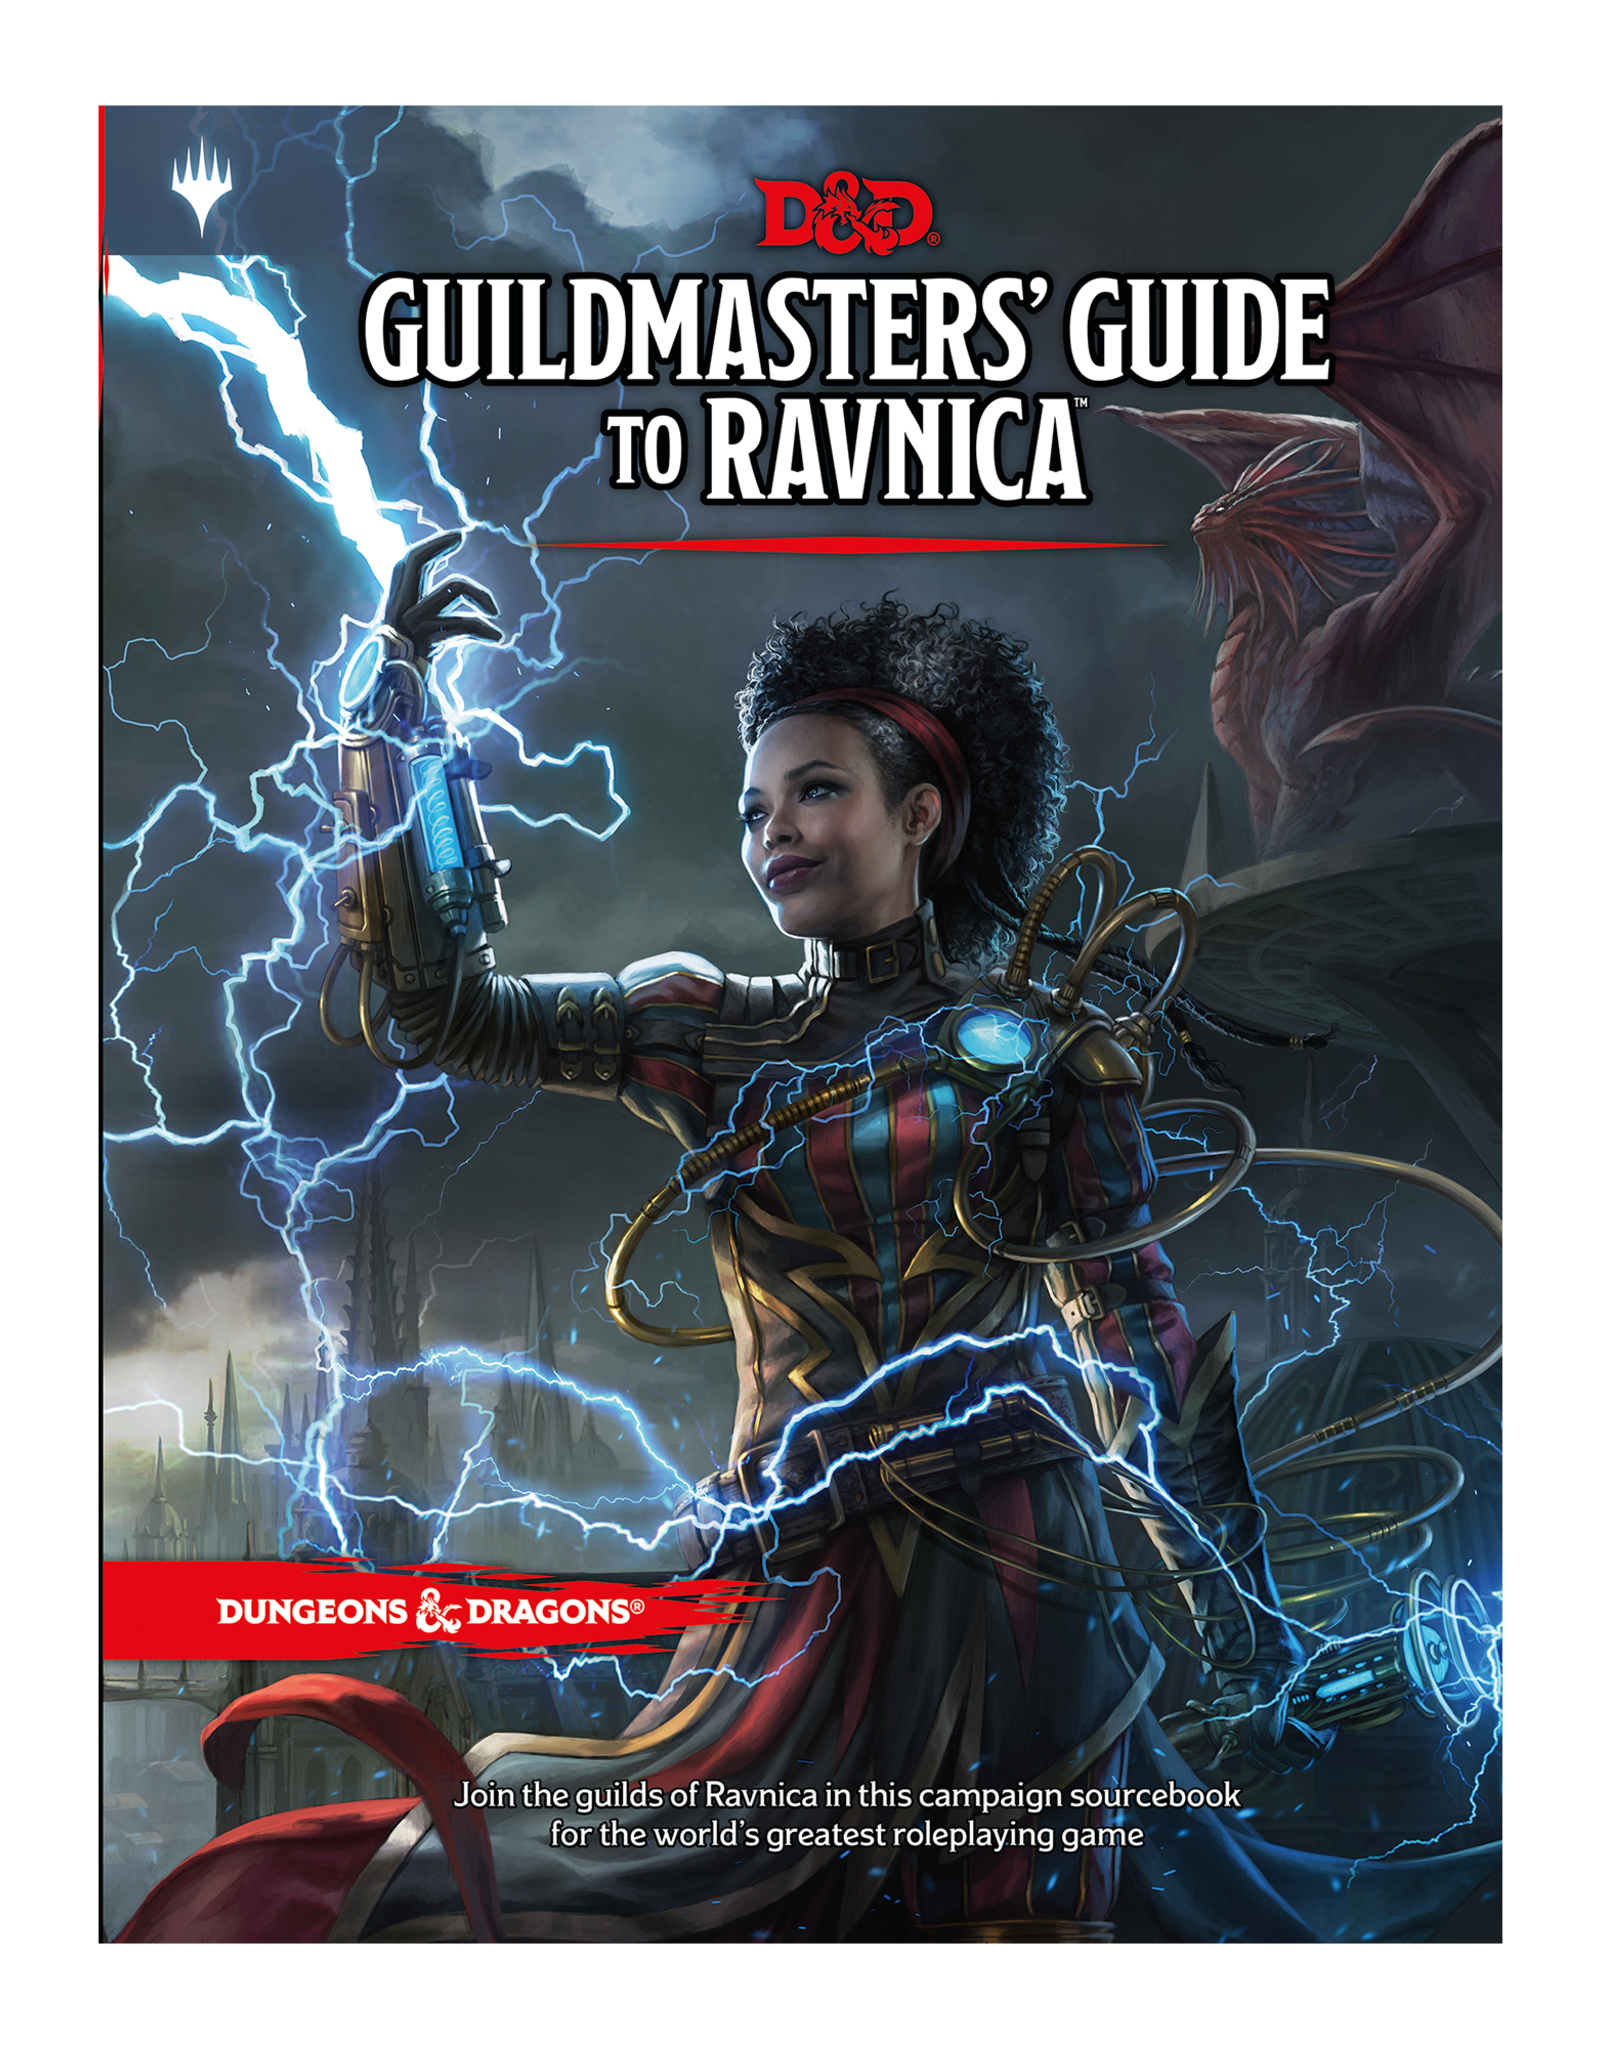 Dungeons & Dragons D&D 5th: Guildmaster's Guide to Ravnica